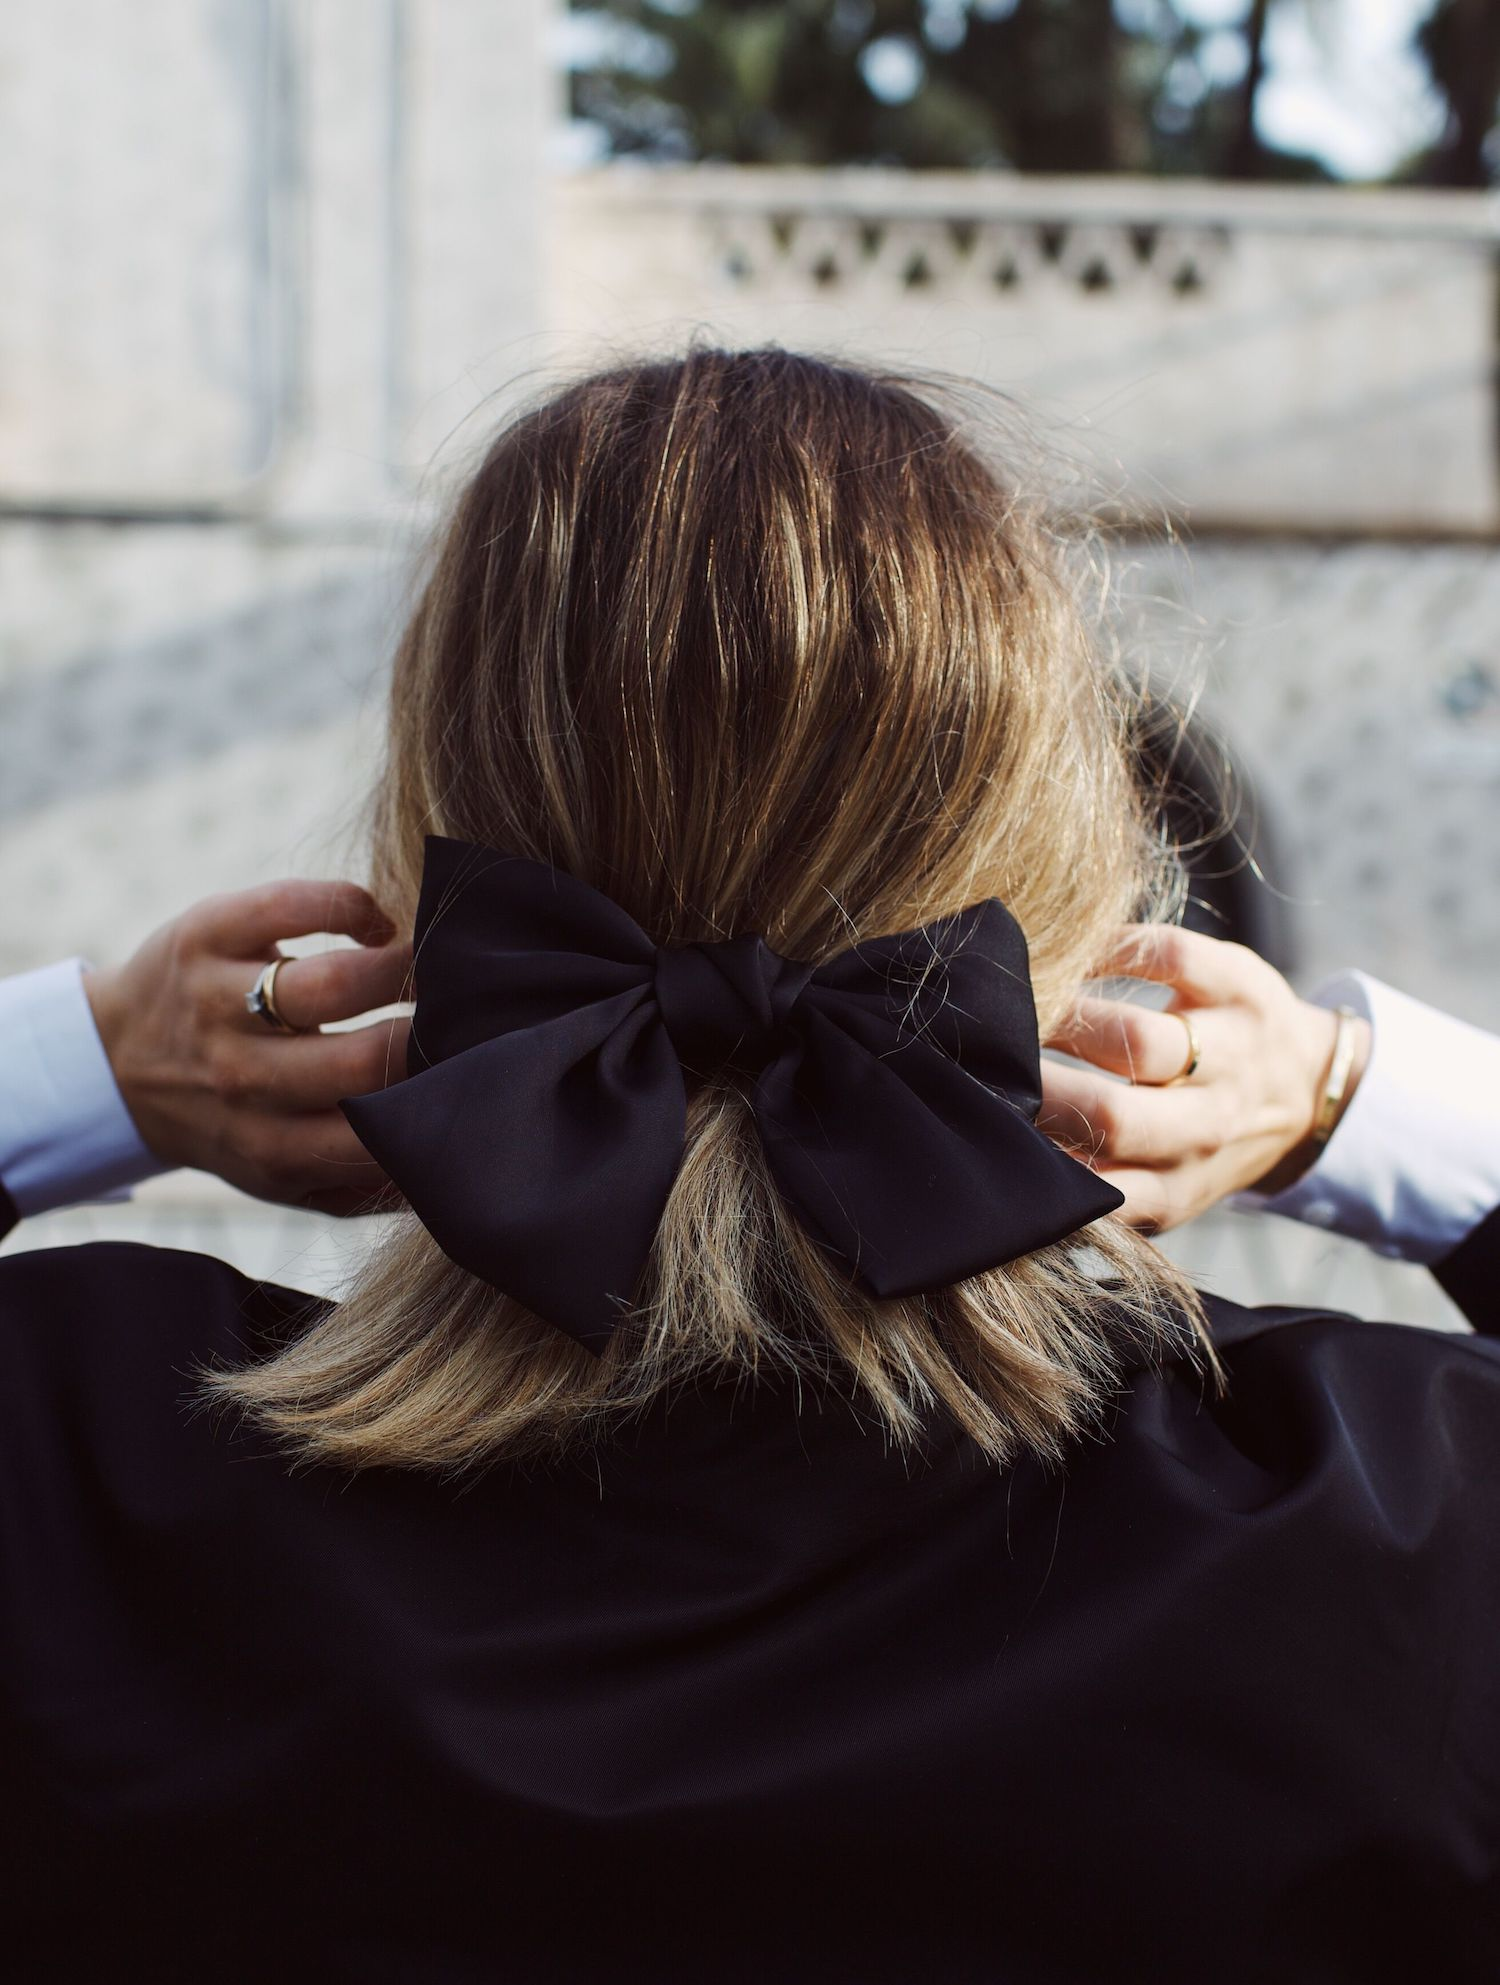 BOW TIE HAIR INSPIRATION